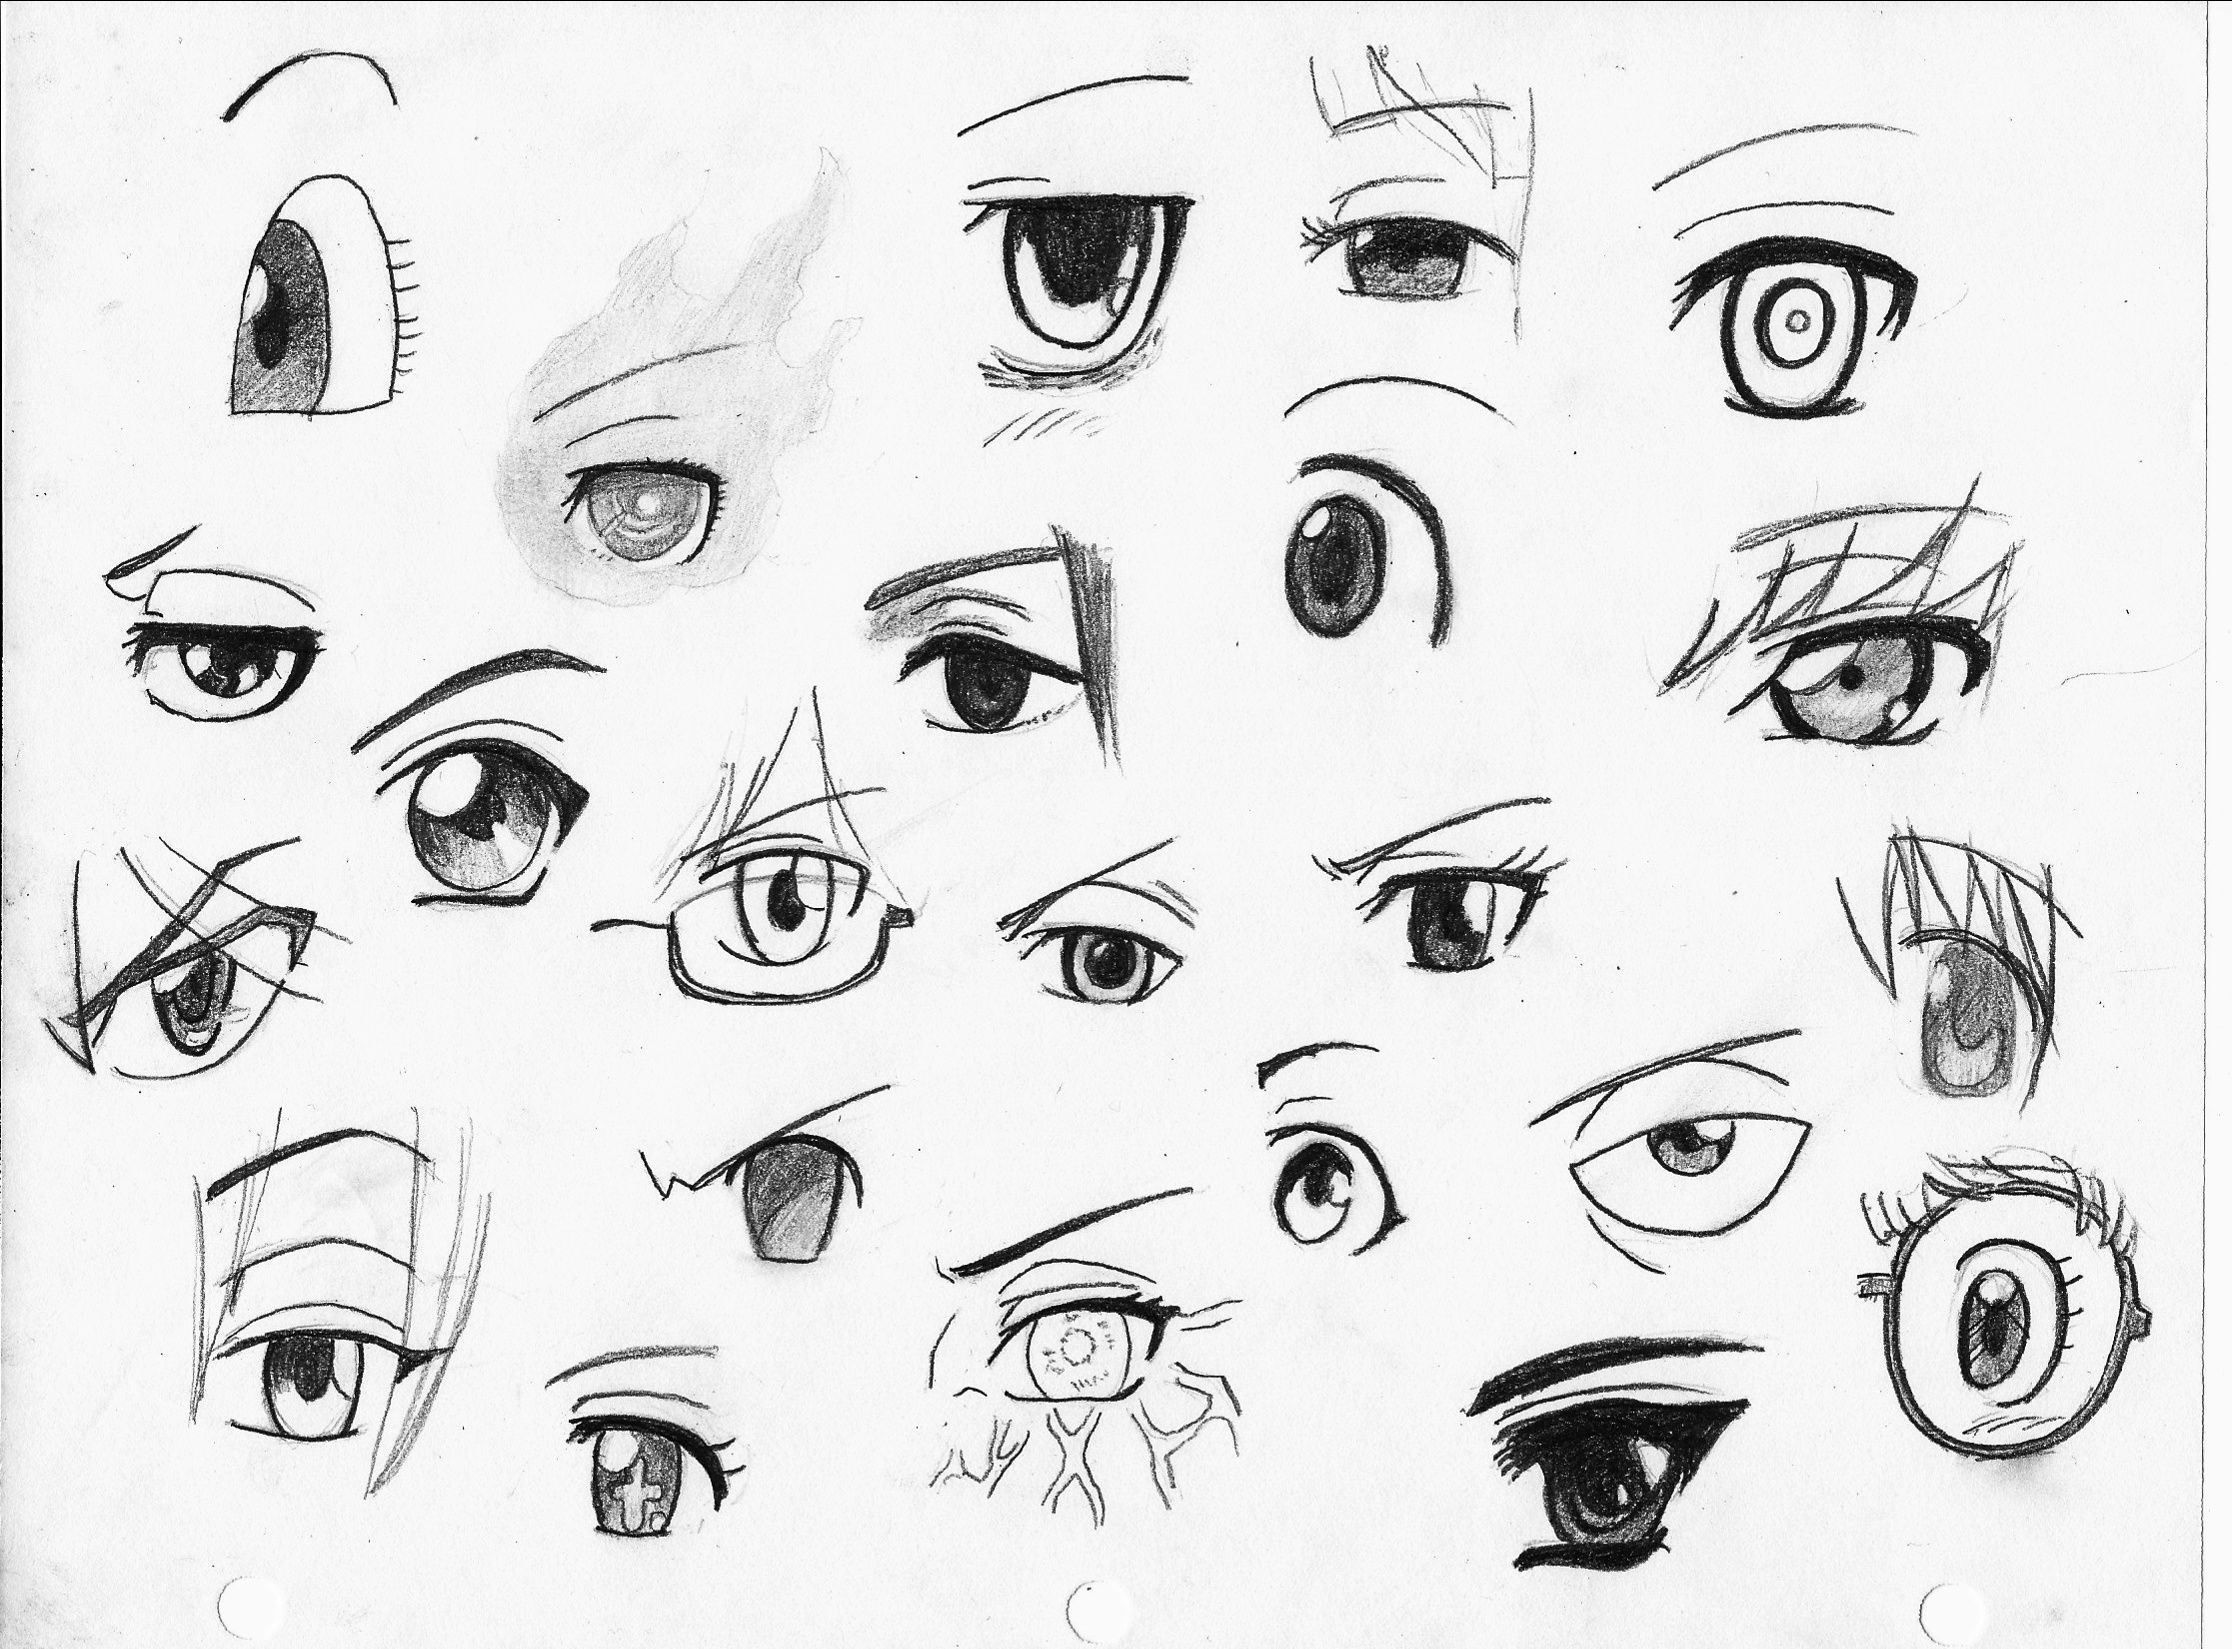 Here S Another Eyes Drawing See If You Can Identify Which Eyes Belong To Which Female Character Answers In The Com Anime Eye Drawing Eye Drawing Anime Eyes